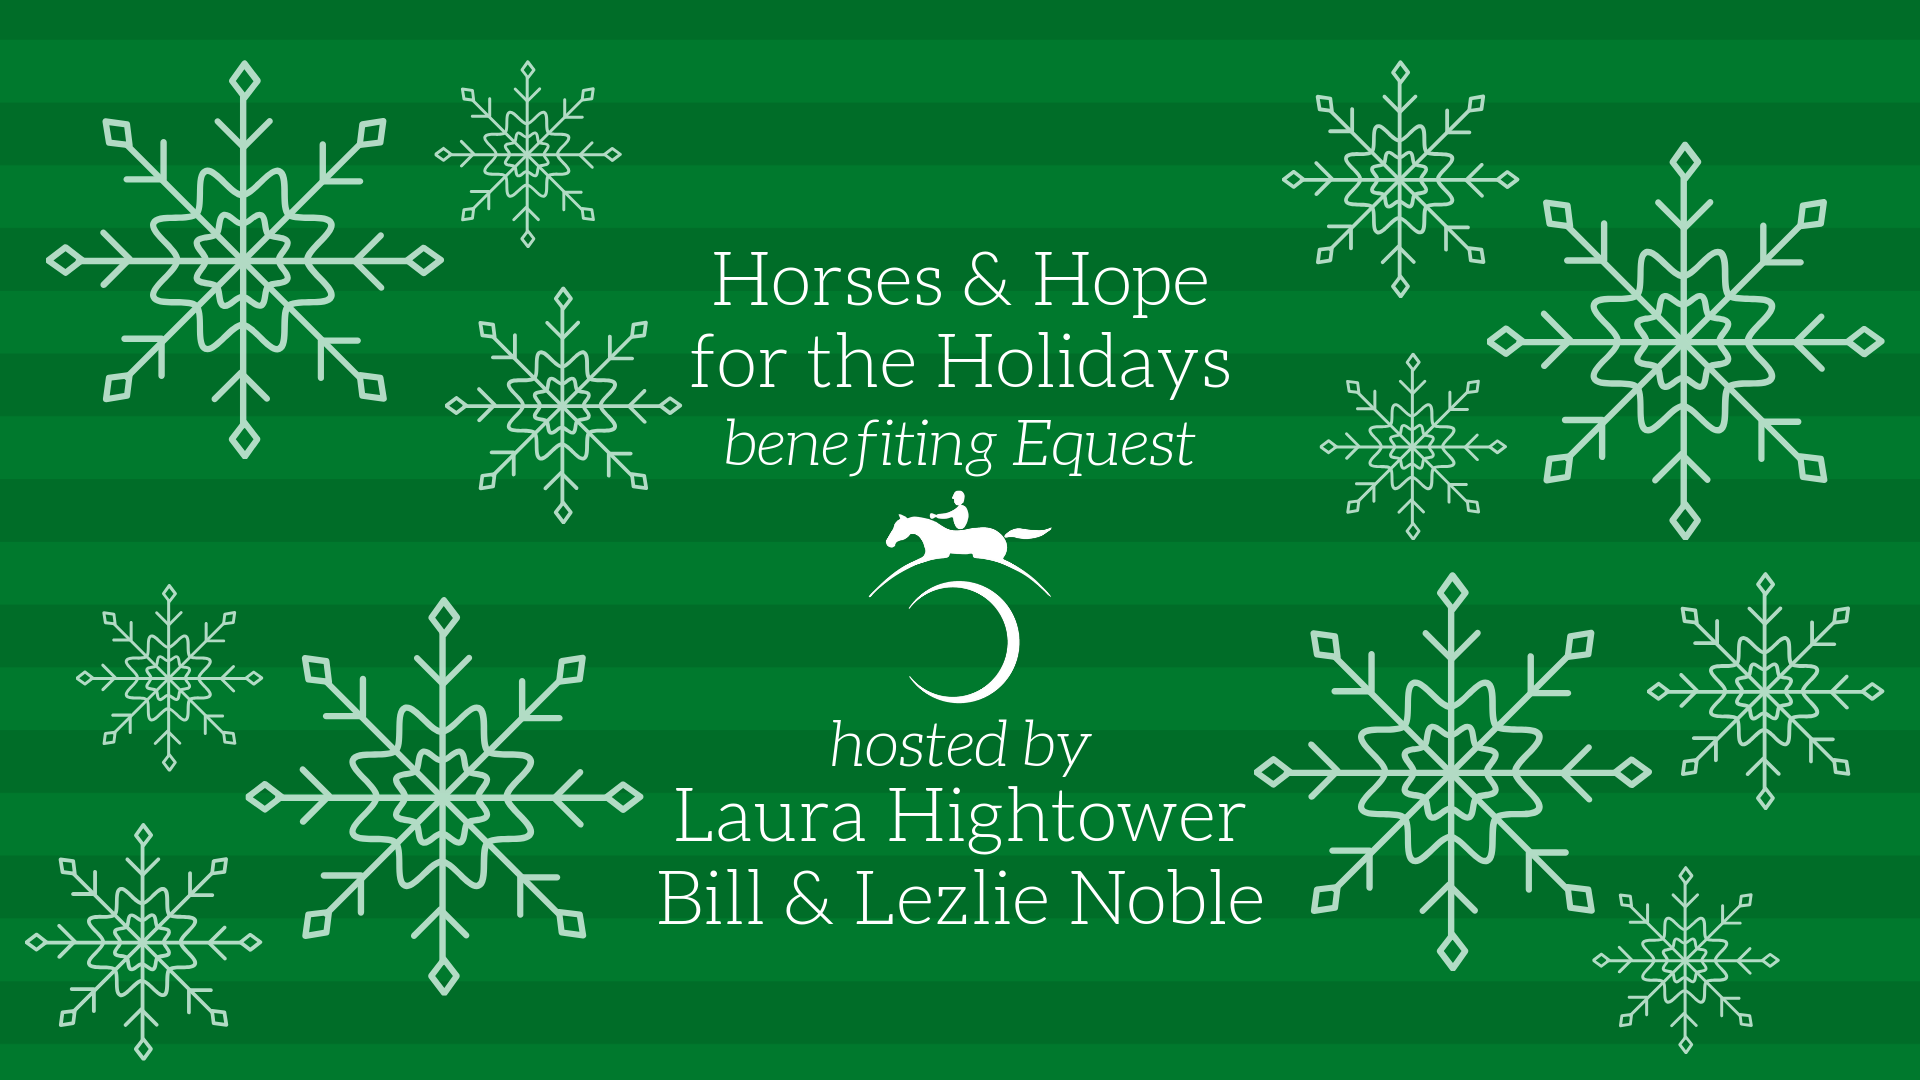 Horses & Hope for the Holidays.png